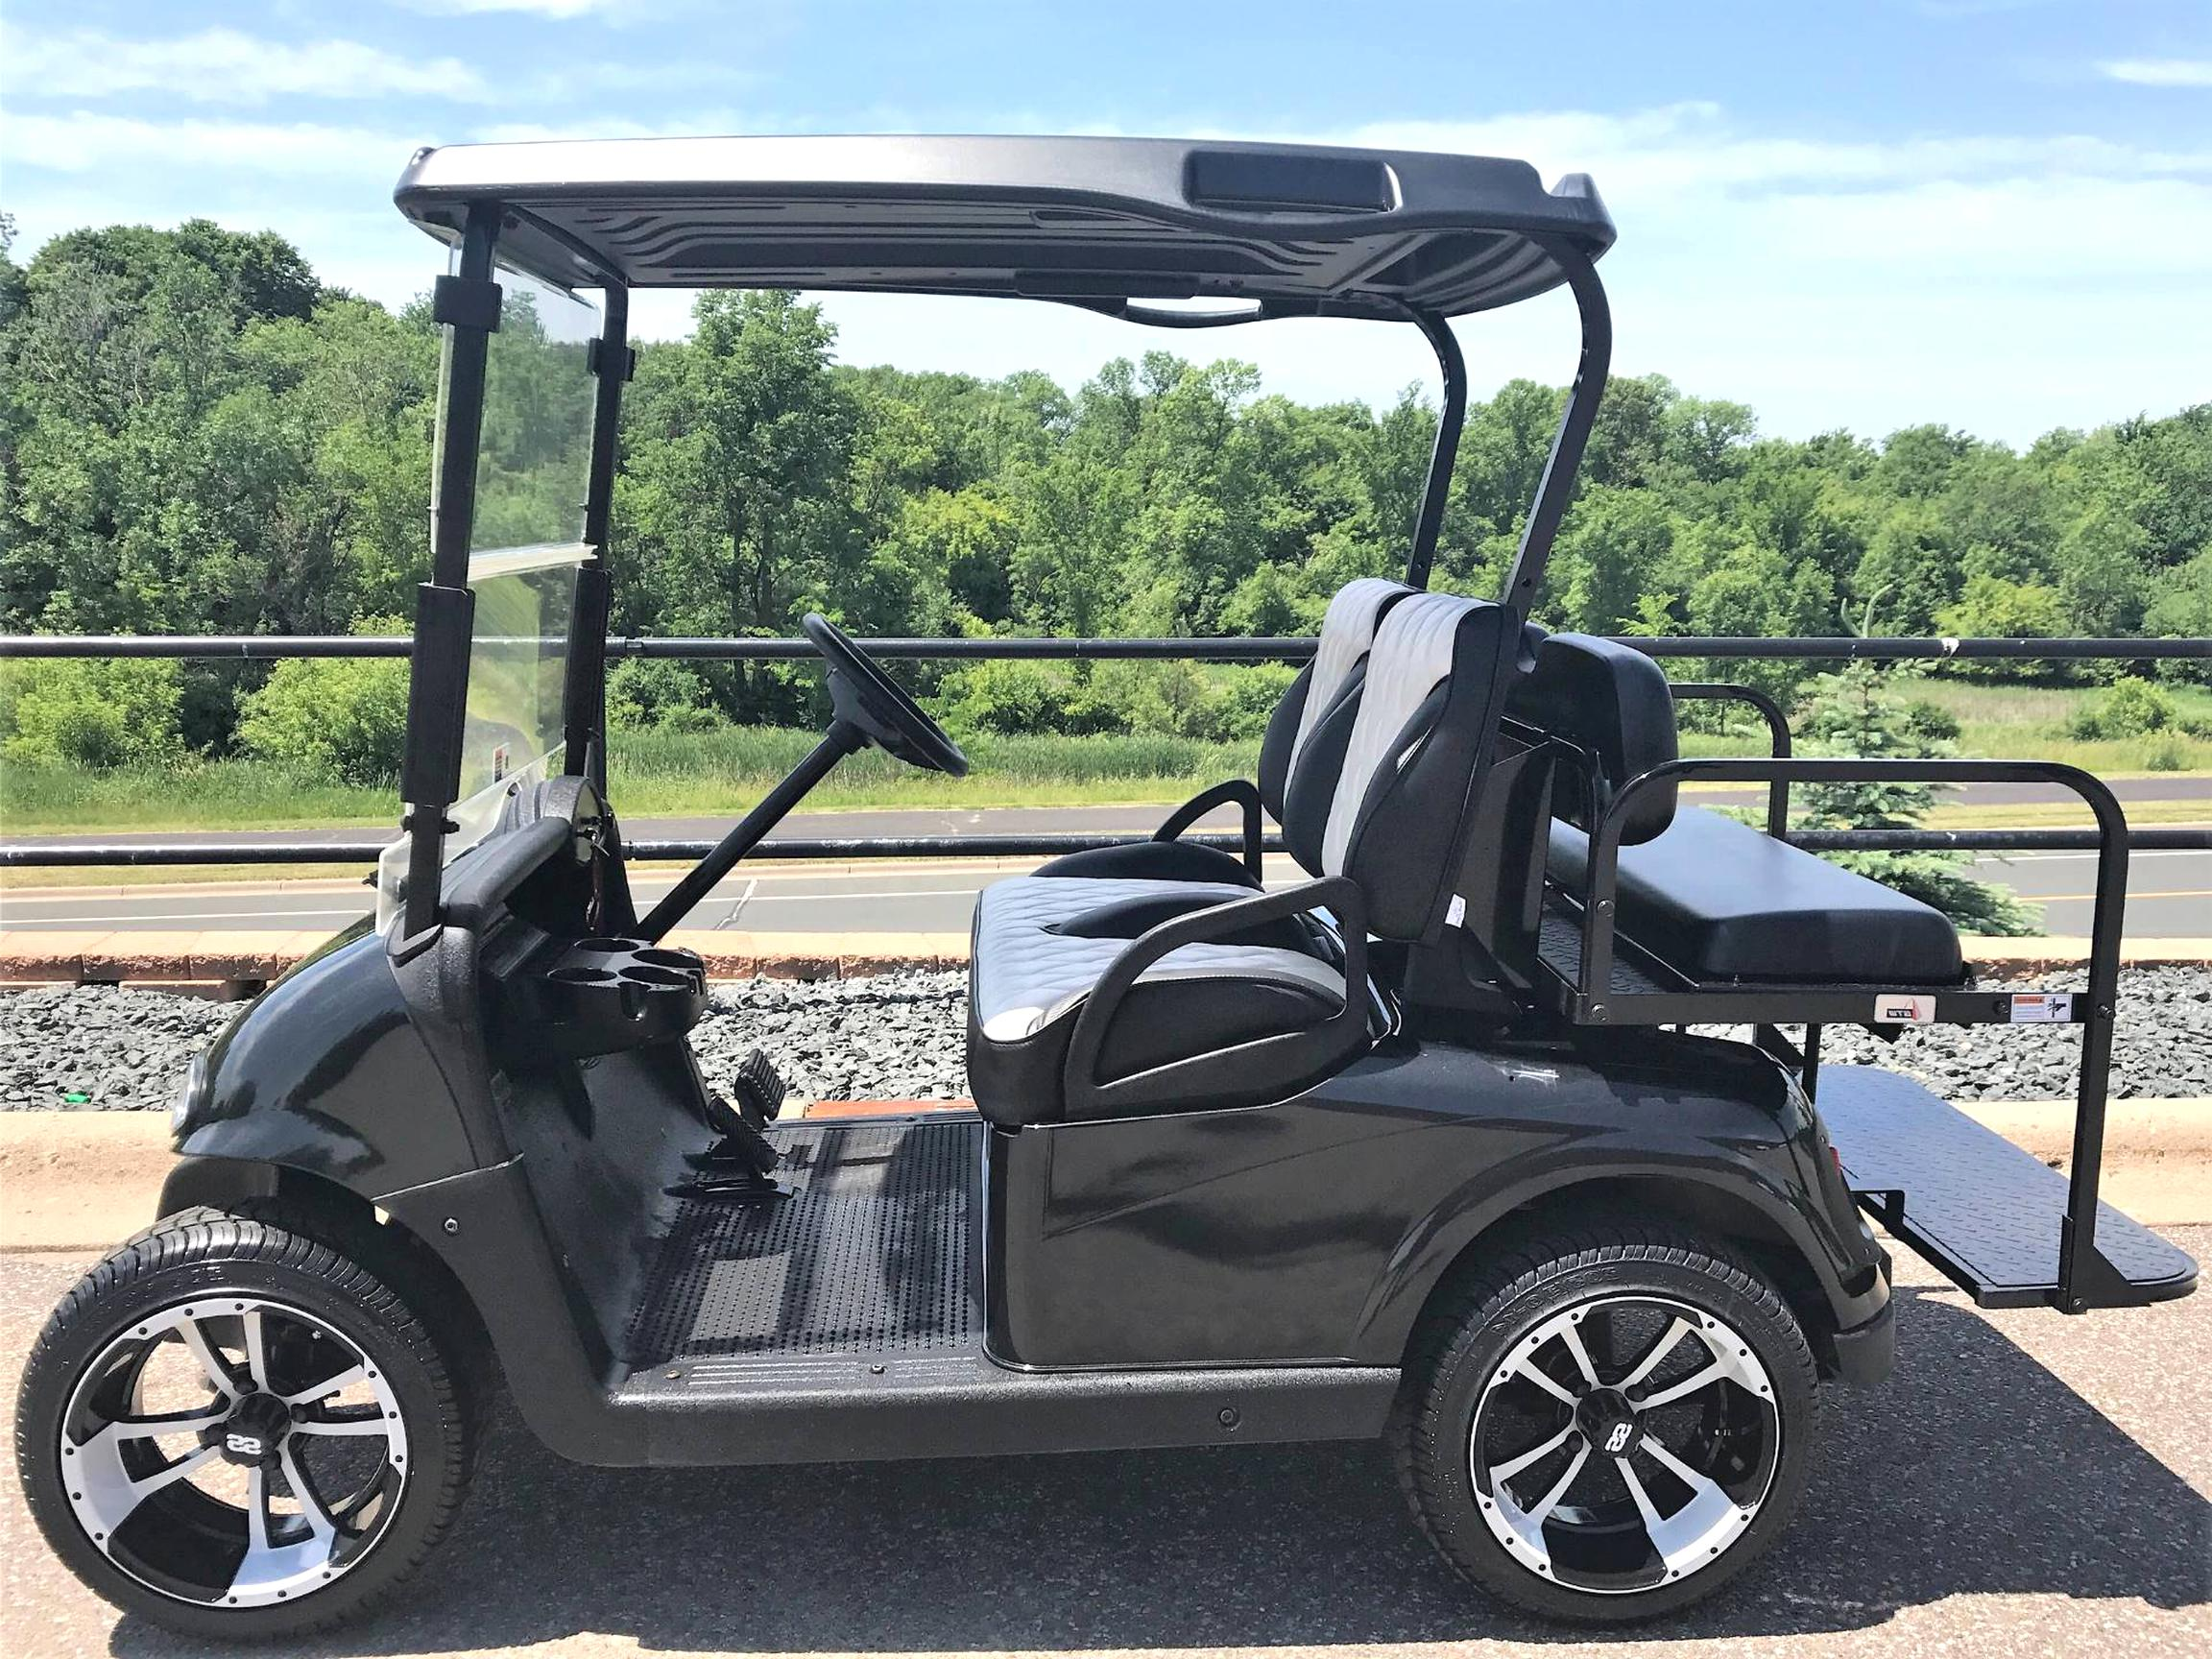 Ezgo Golf Cart for sale | Only 3 left at -70%